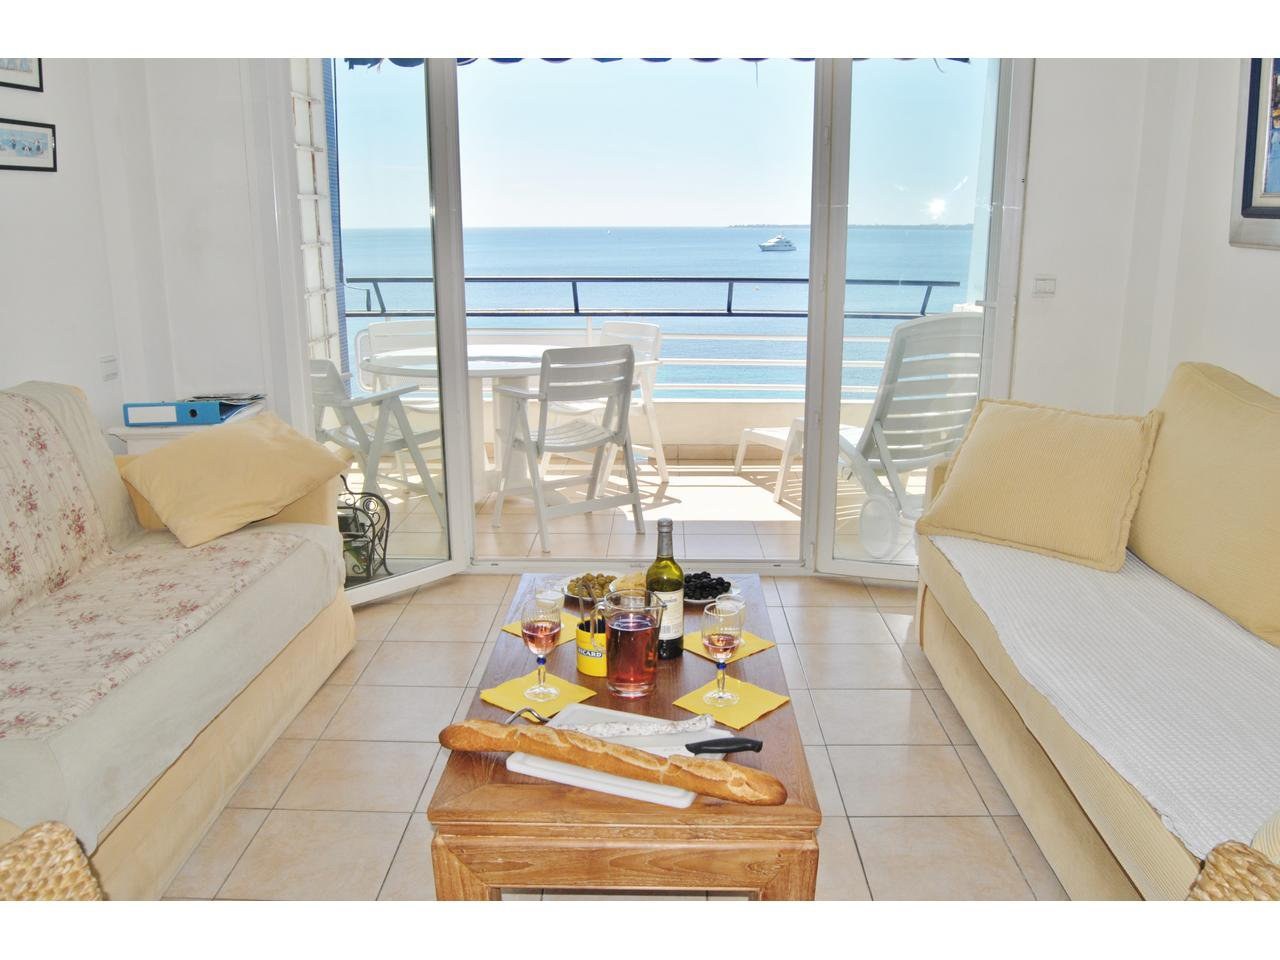 Seafront 1 bedroom apartment for 4 people with parking and WIFI